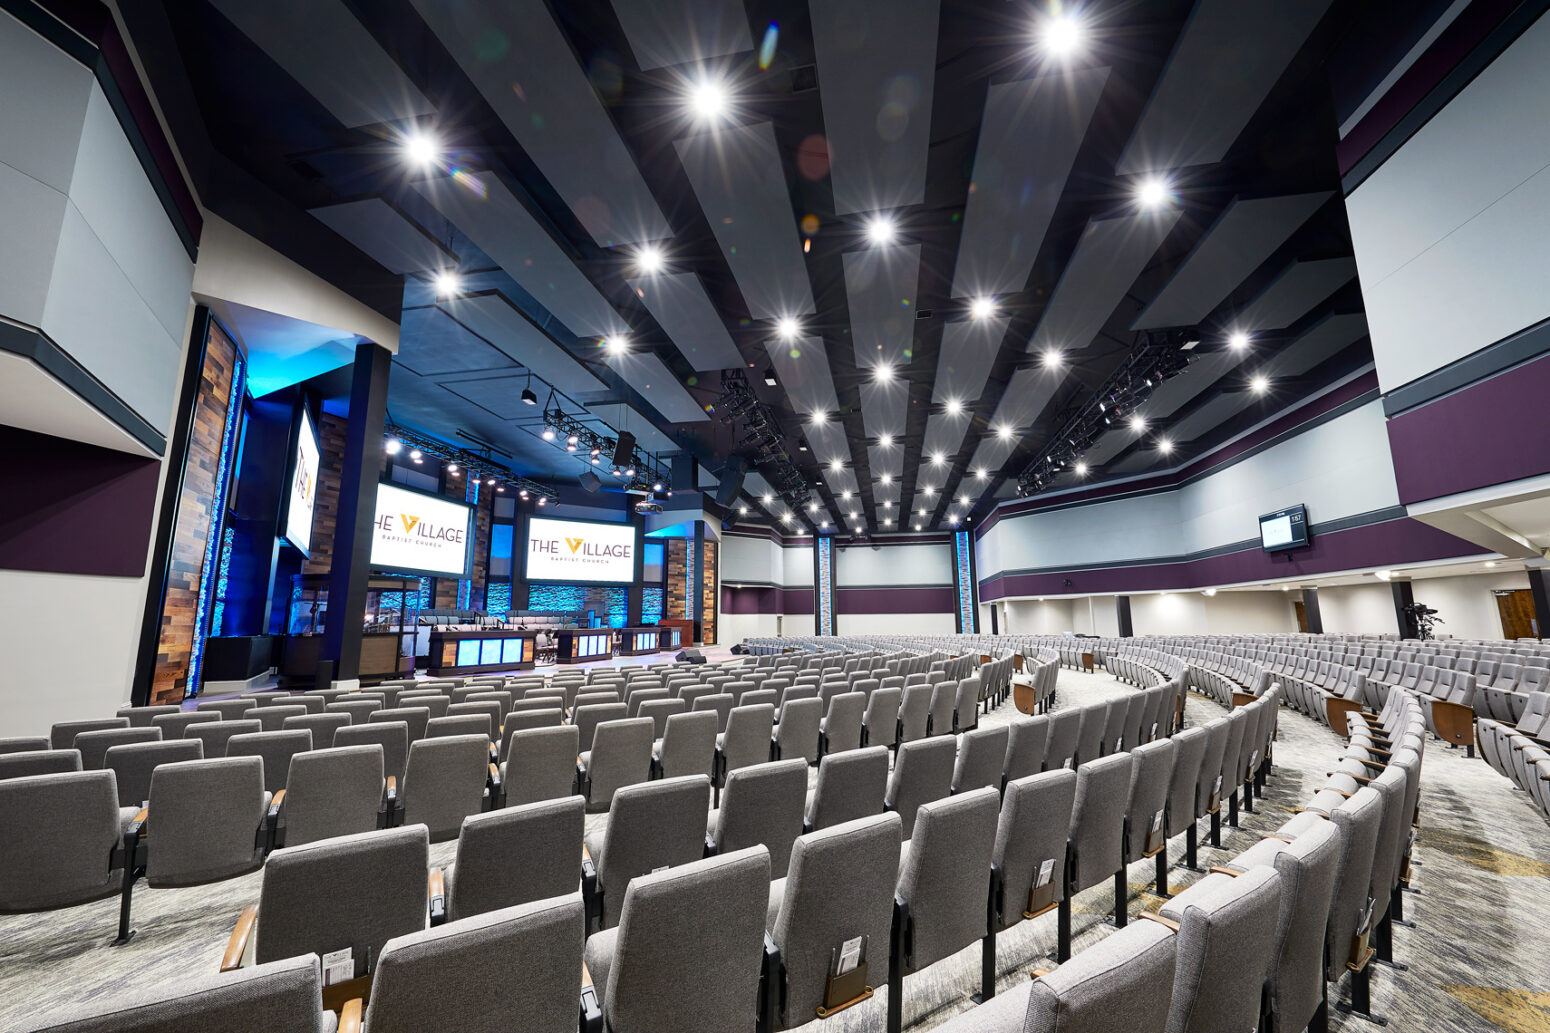 Church audio visual companies like Paragon 360 work wonders, as seen in this auditorium photo.